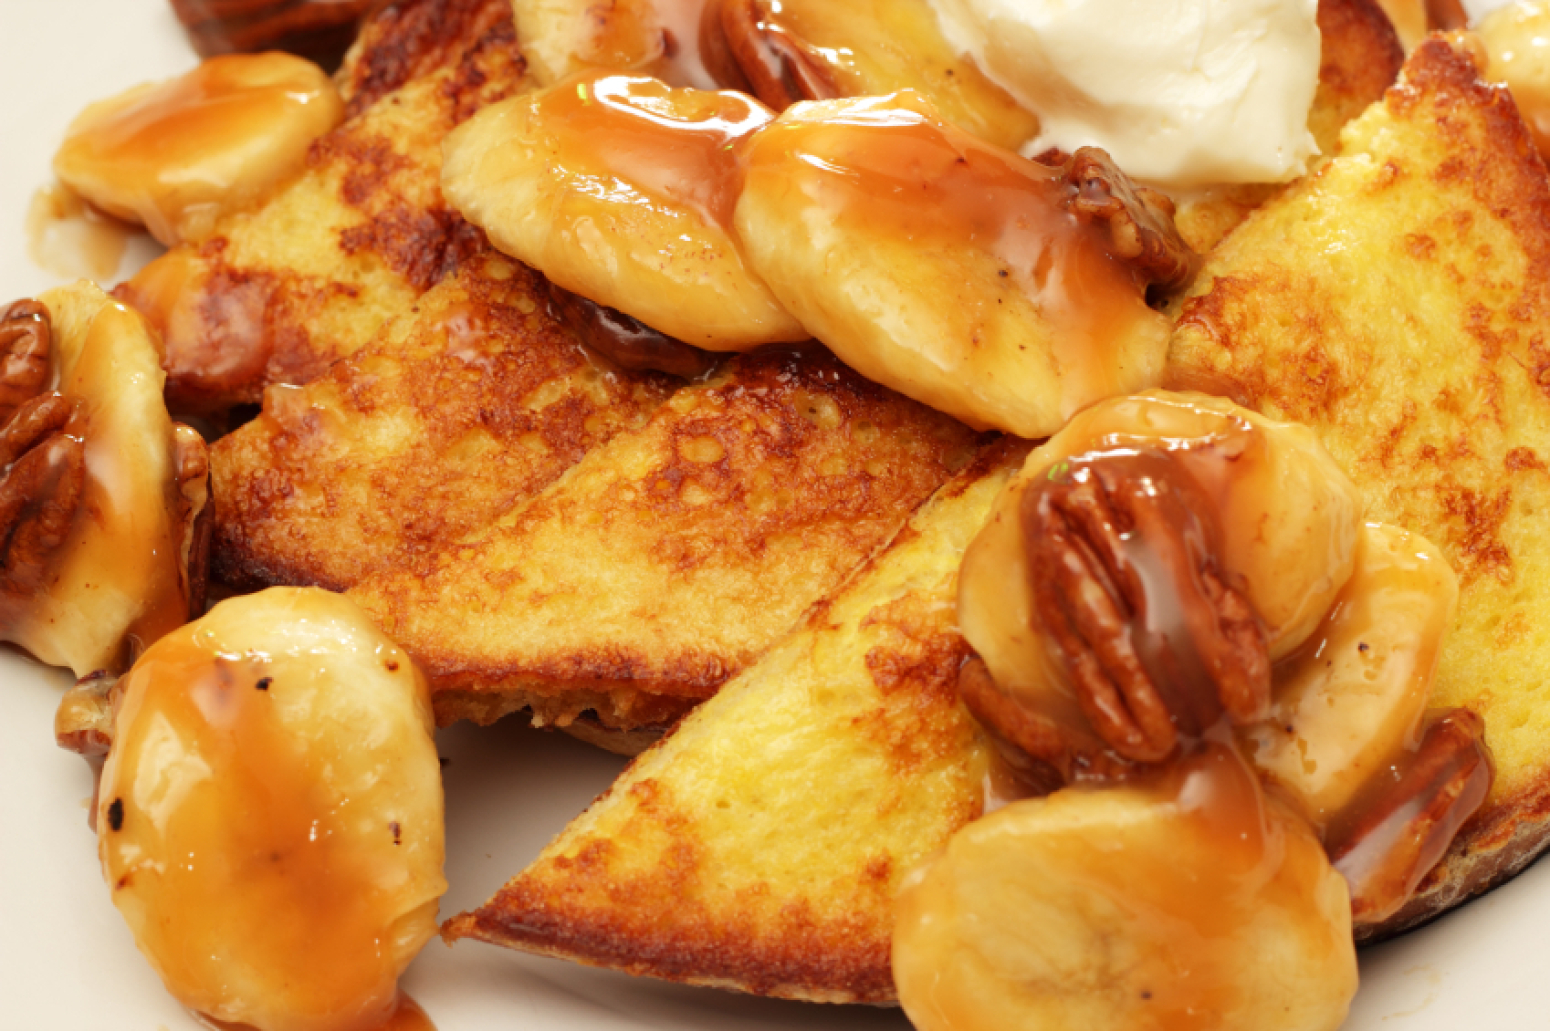 Caramelized Banana & Pecan French Toast Recipe | Just A ...